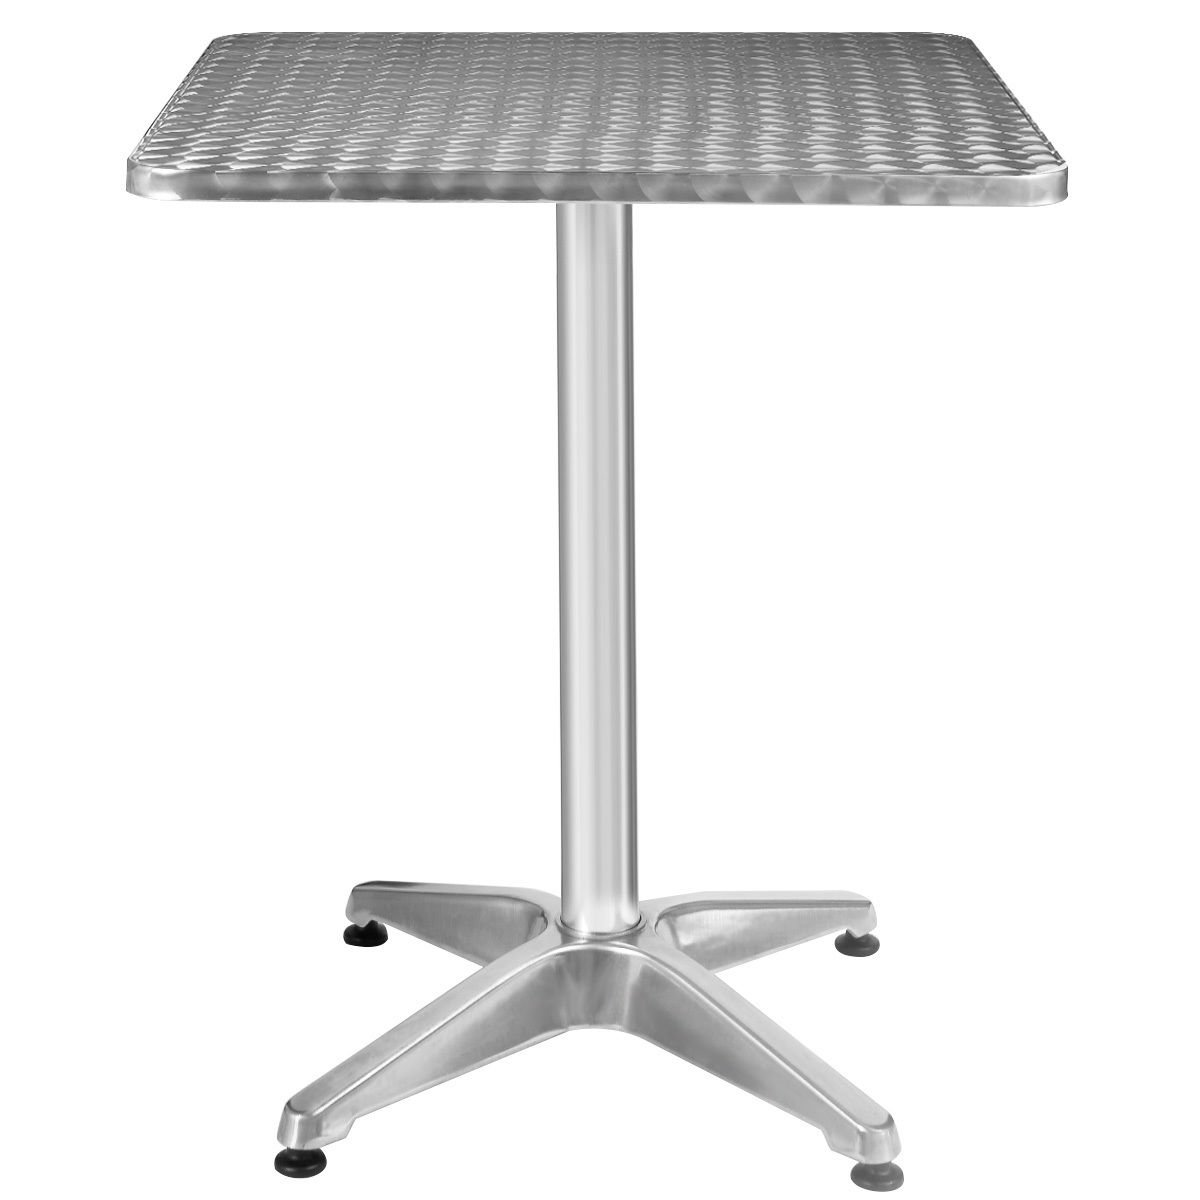 New Adjustable Aluminum Stainless Steel Square Table 23 1/2'' Patio Pub Restaurant by MTN Gearsmith